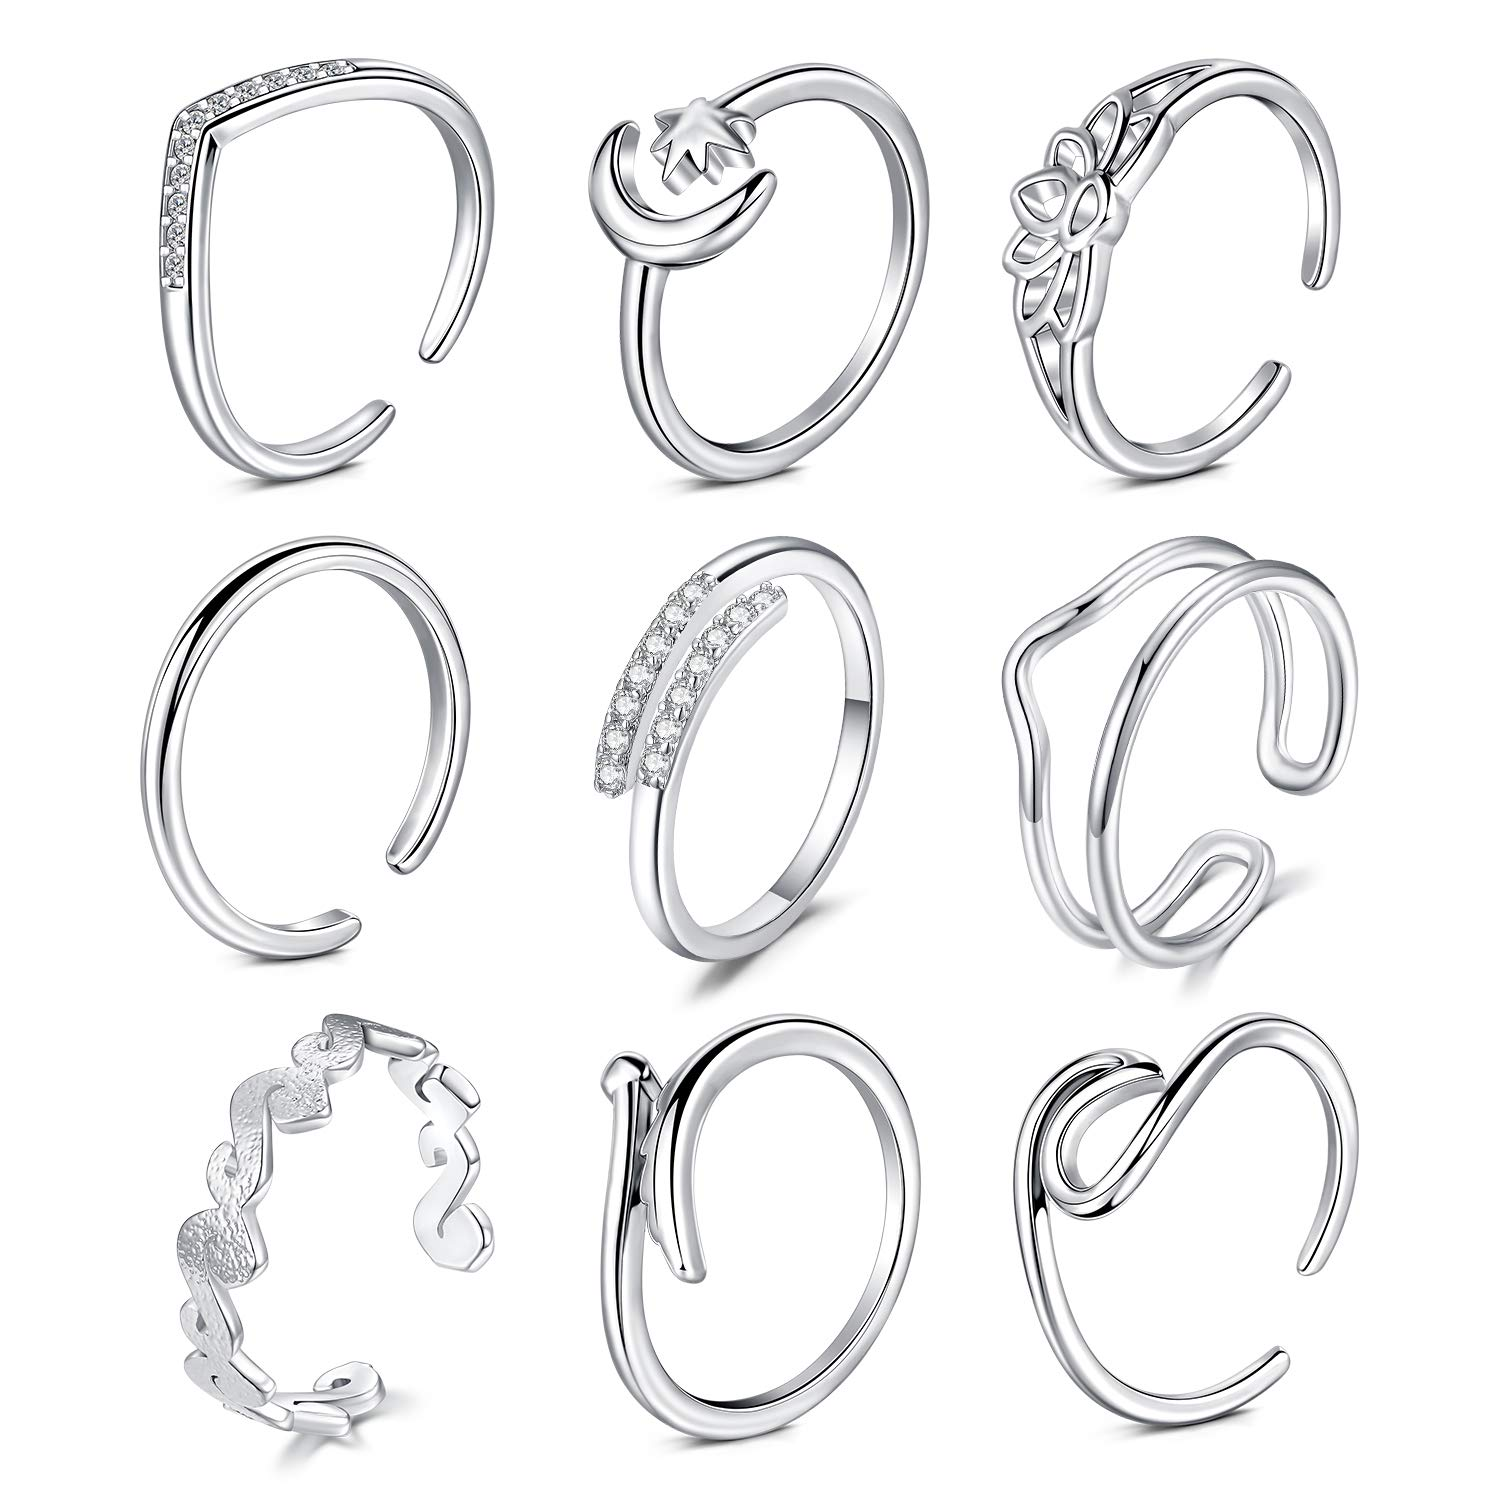 D.Bella Adjustable Toe Rings for Women Summer Beach Hypoallergenic Open Toe Ring Finger Tail Ring Set Foot Jewelry